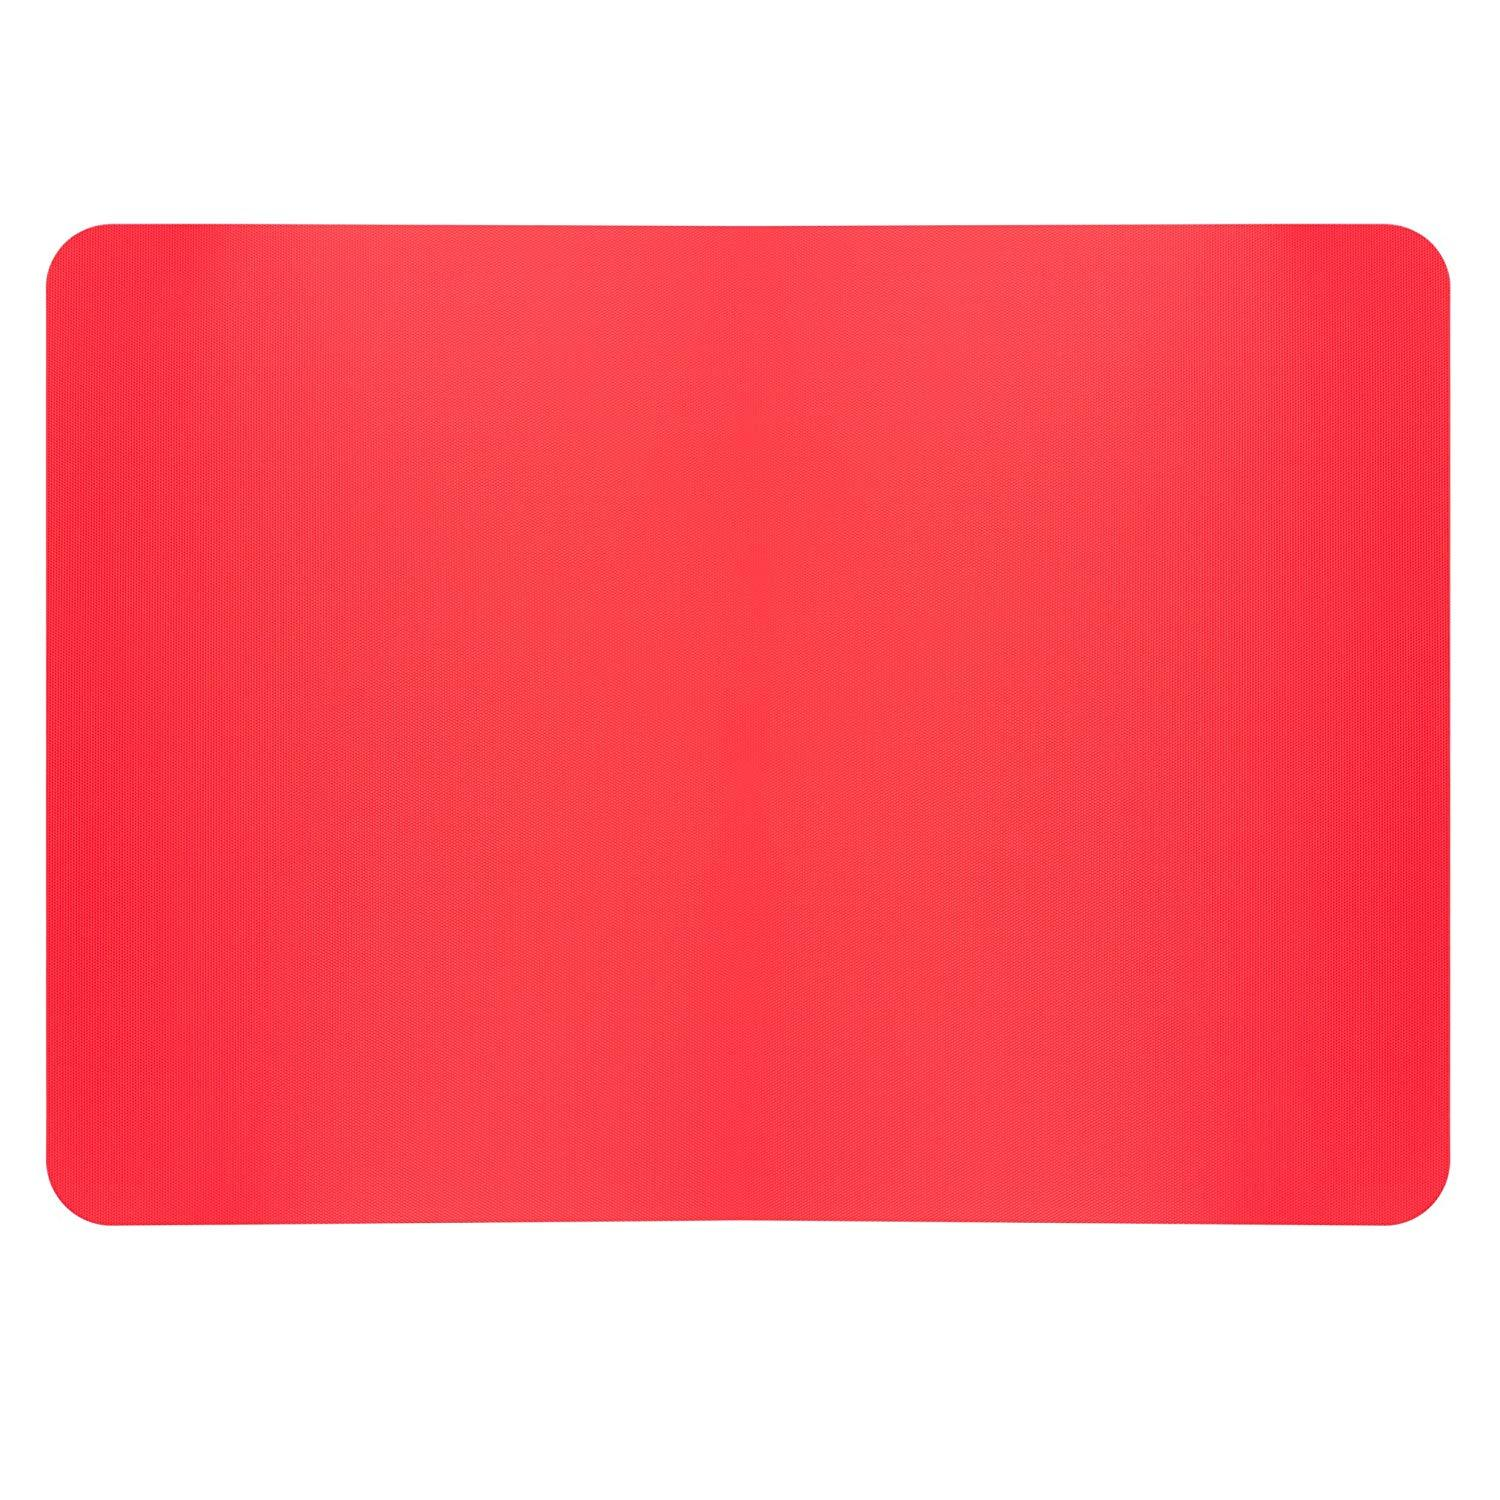 Tovolo 81-9677, Countertop Cutting Mat, Candy Apple